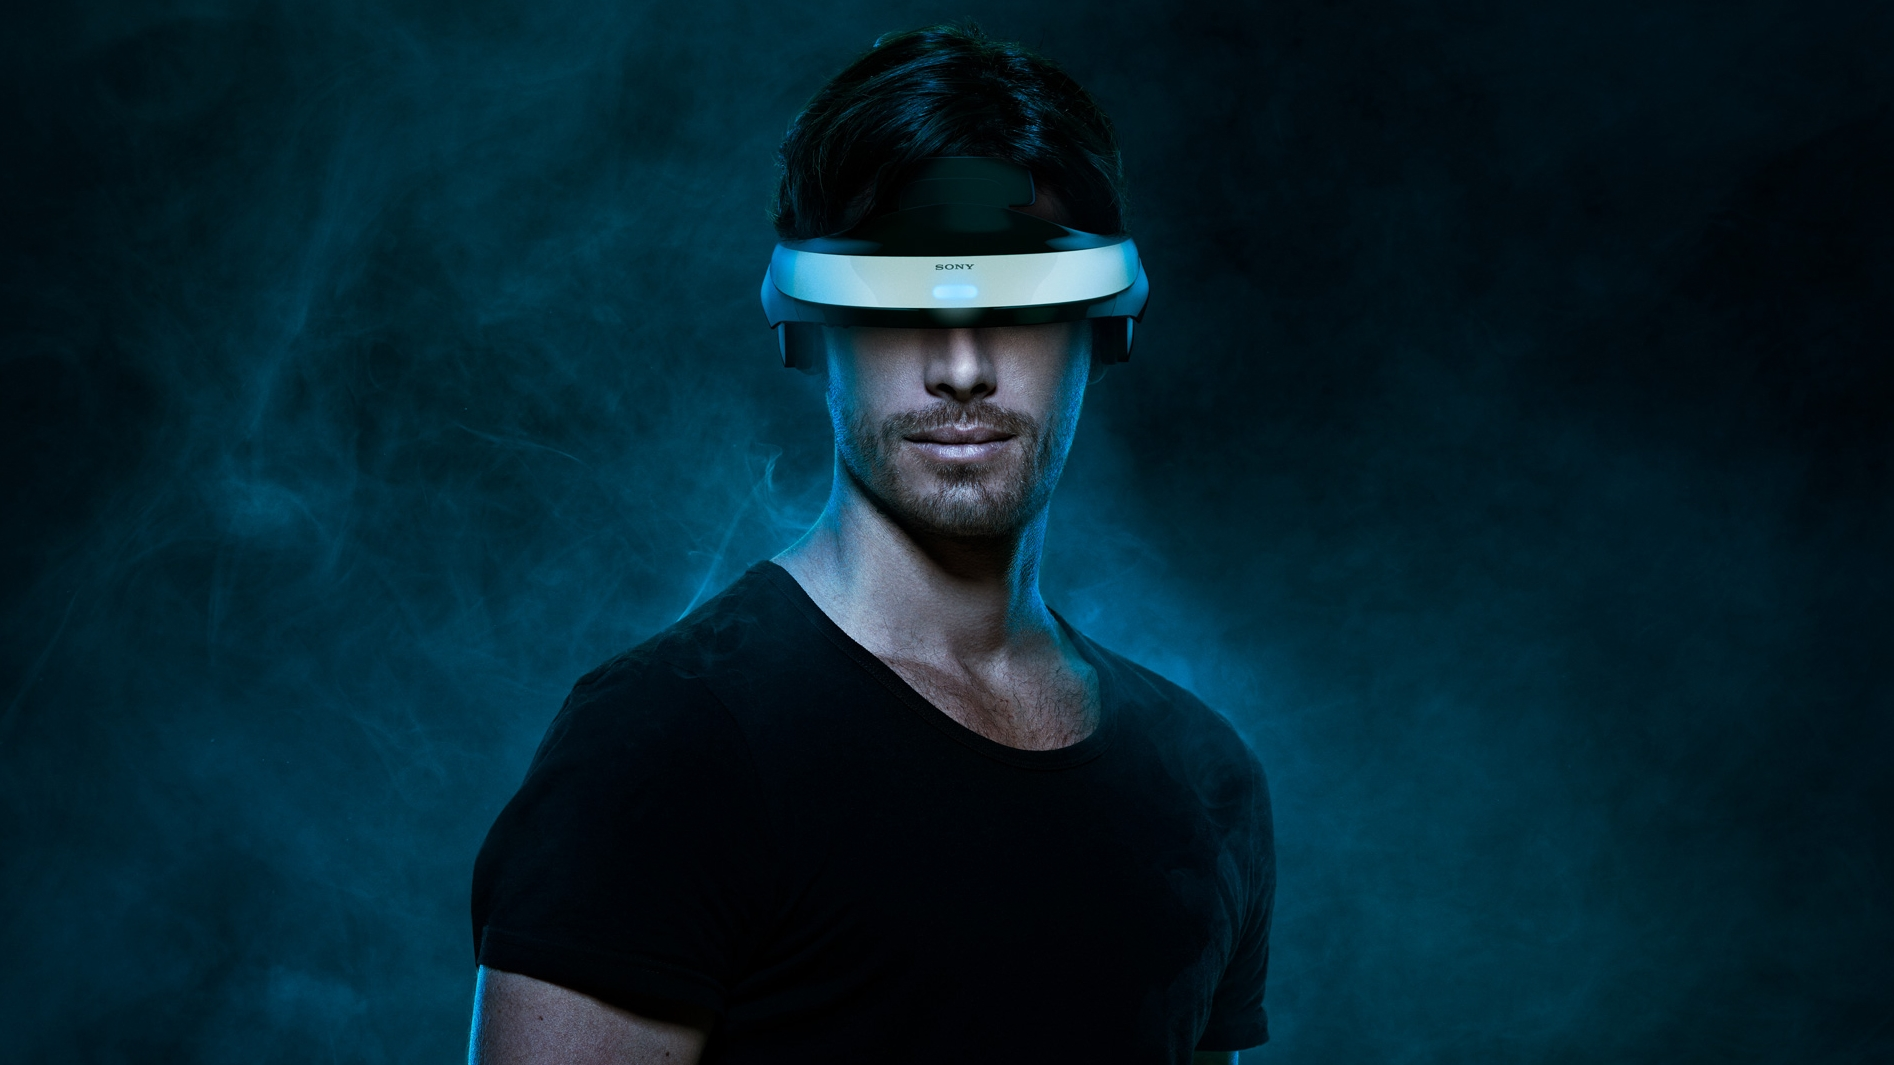 dbd0ab092031 Sony set to reveal PS4 virtual reality headset at GDC 2014